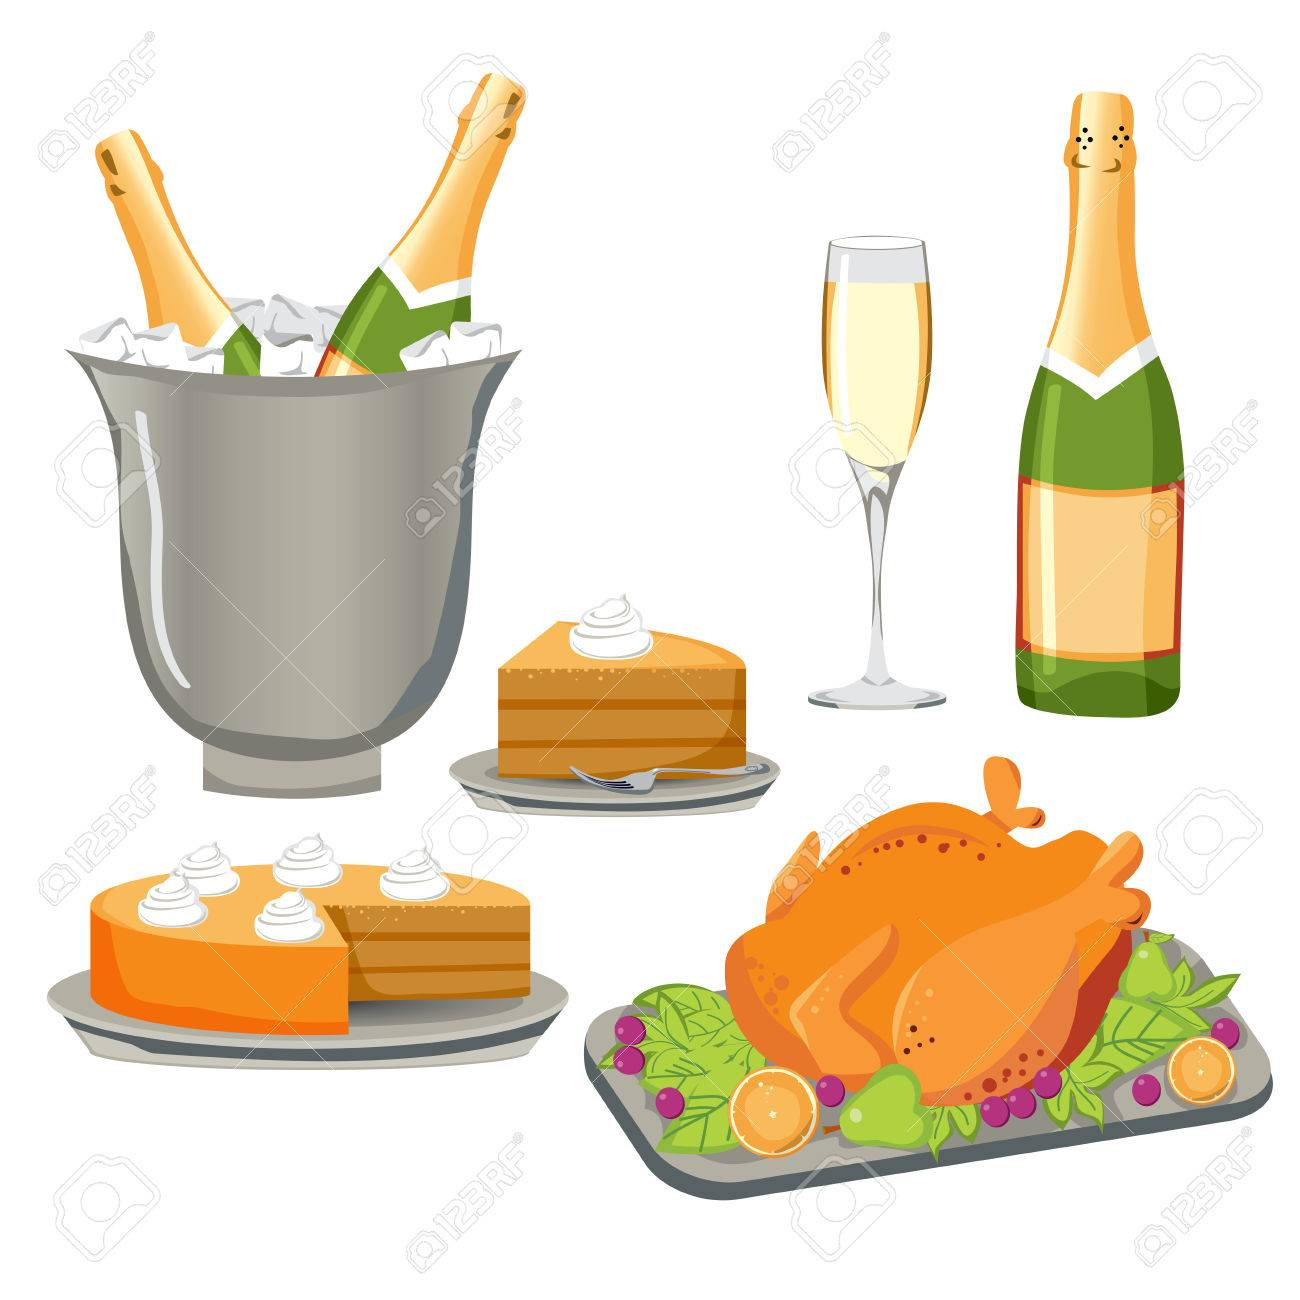 Set of delicious food and drink for celebration, party or any festive events Stock Vector - 8133396